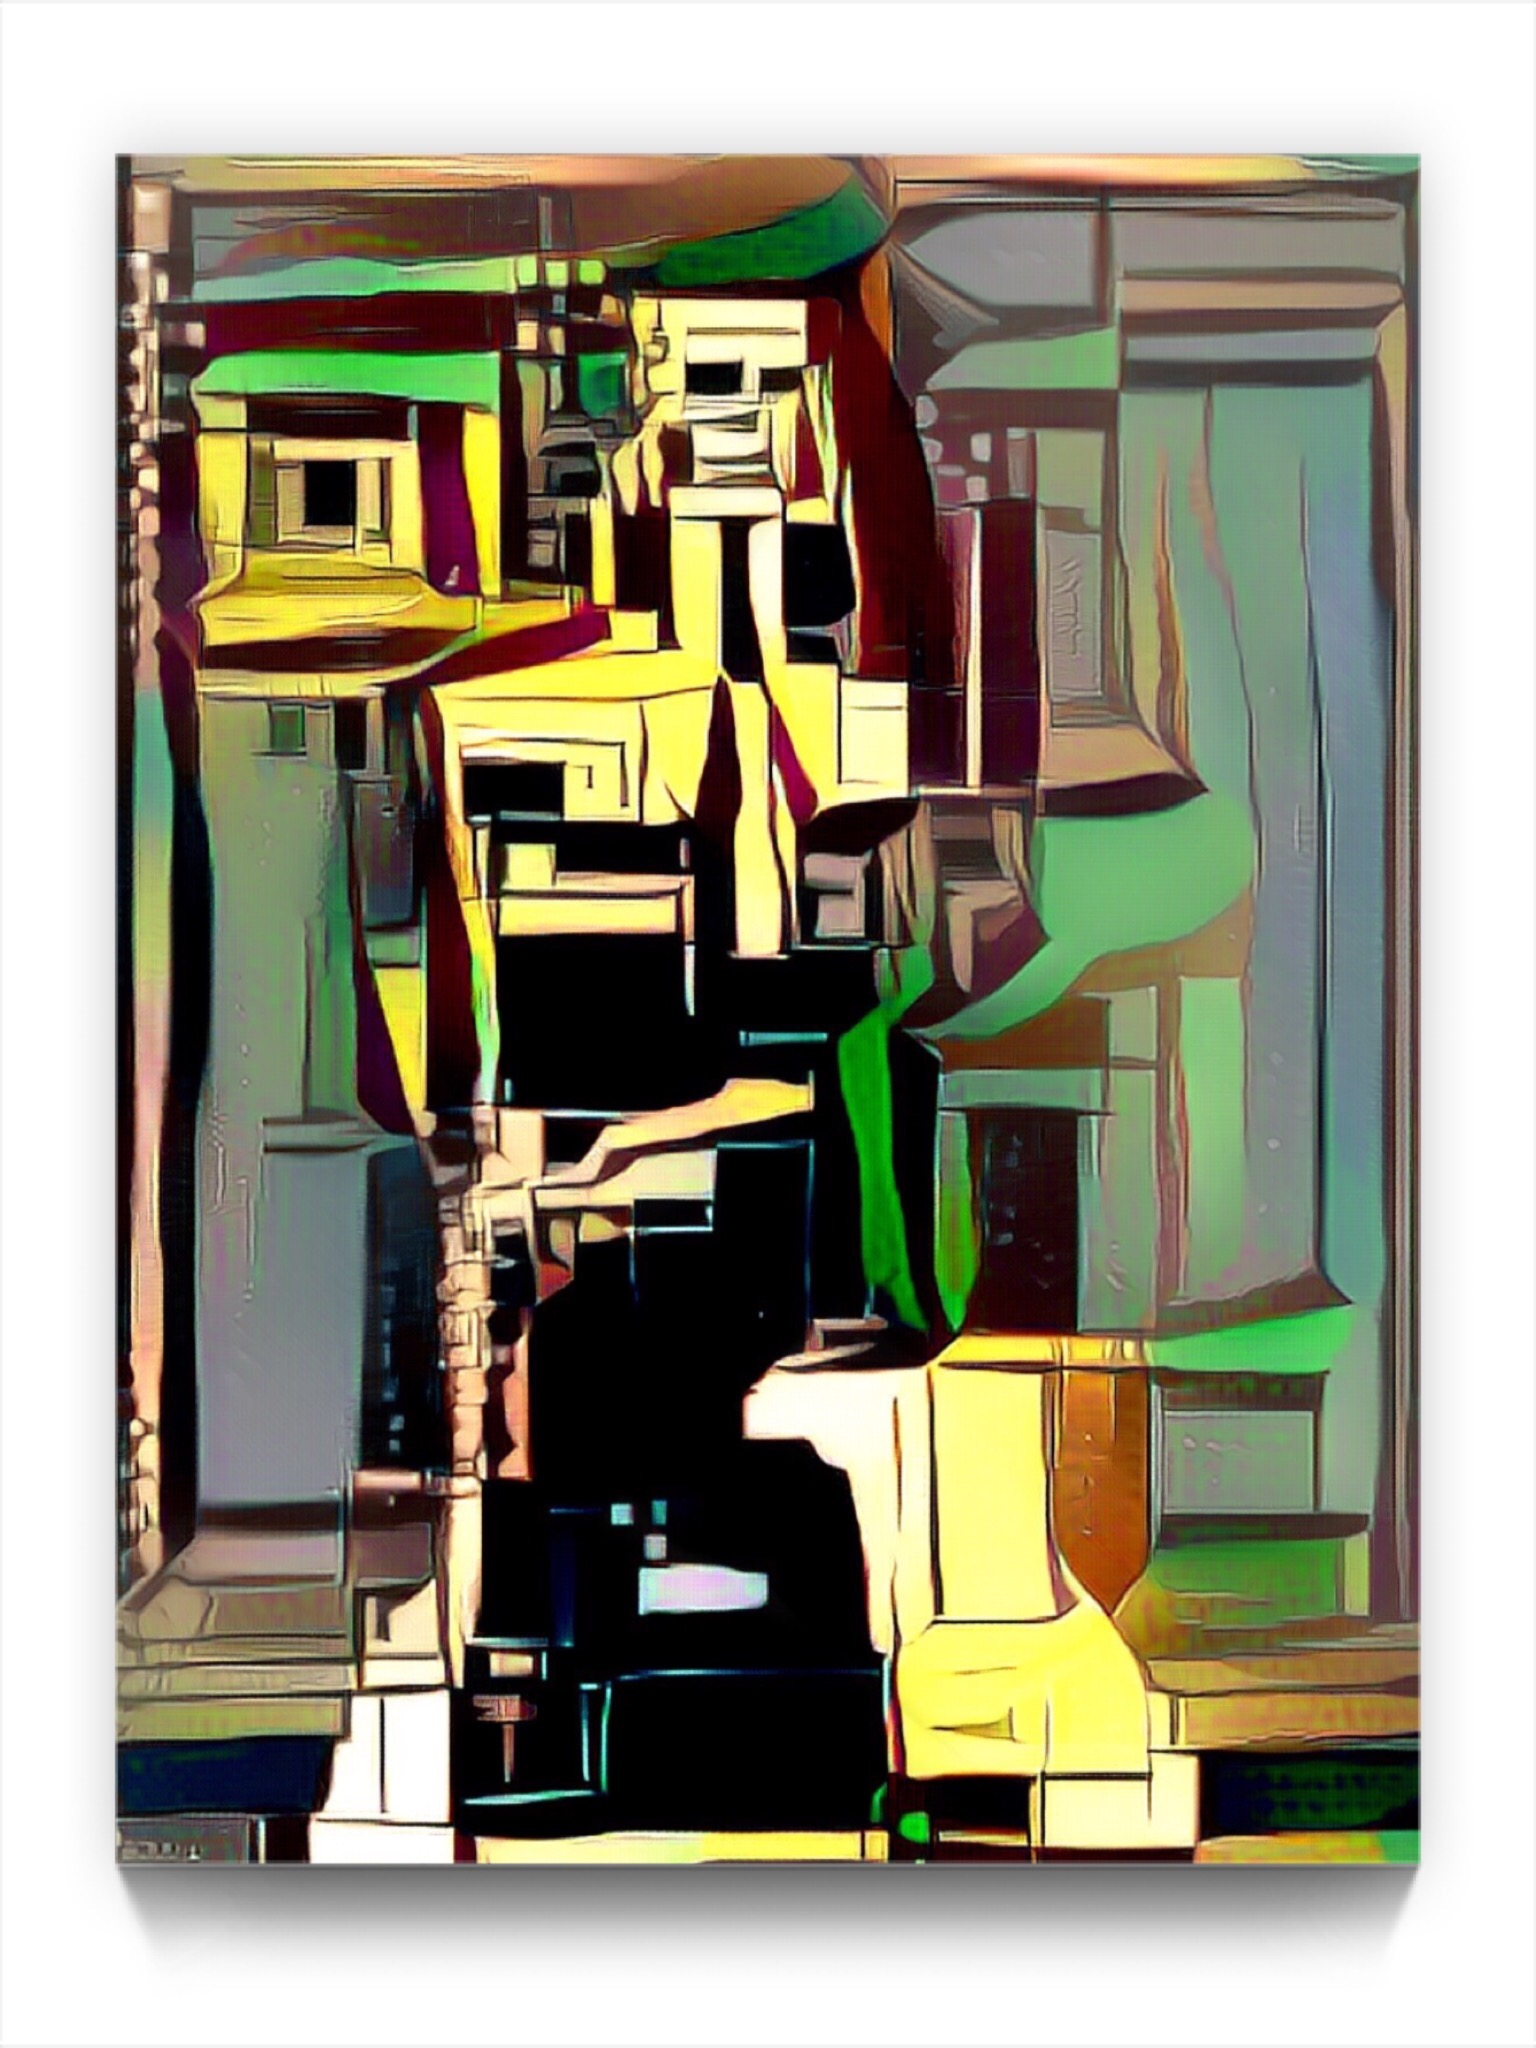 NEURALISM by New Media iPhone Artist Mark Sedgwick